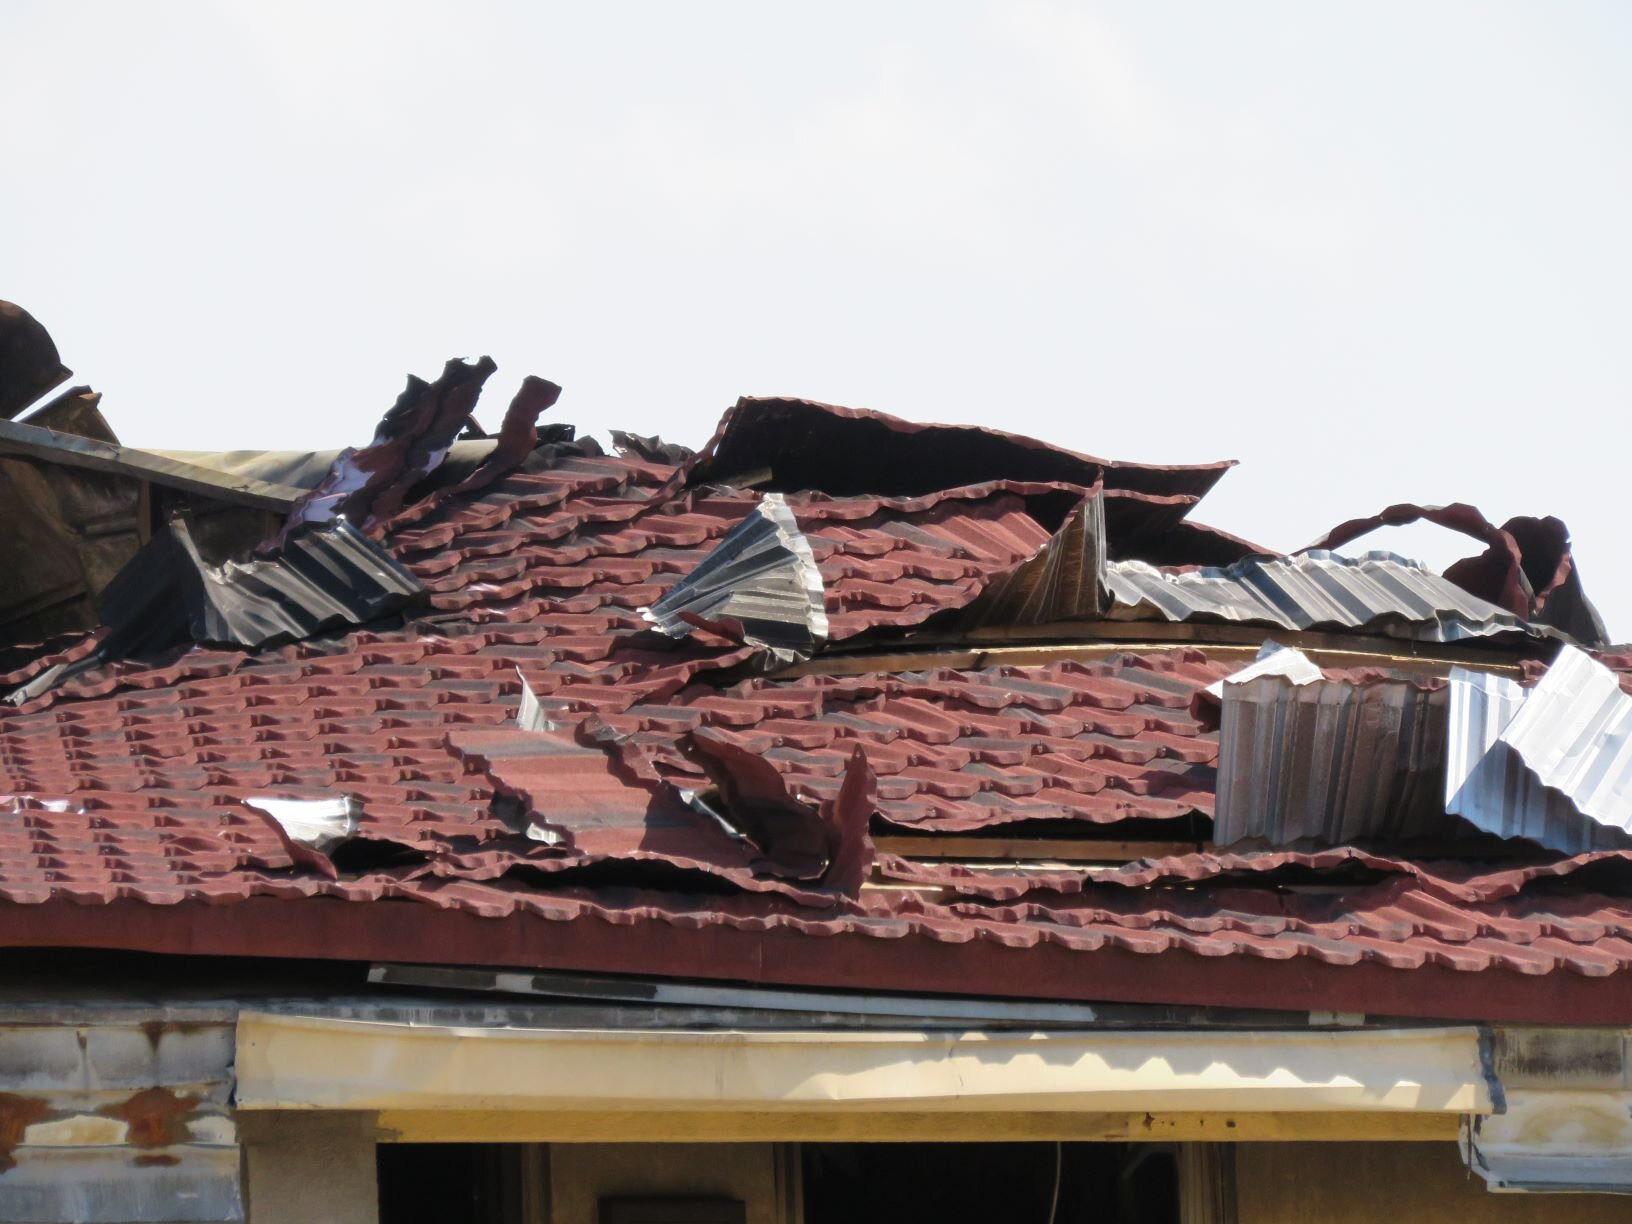 Metal tile roof after a fire.